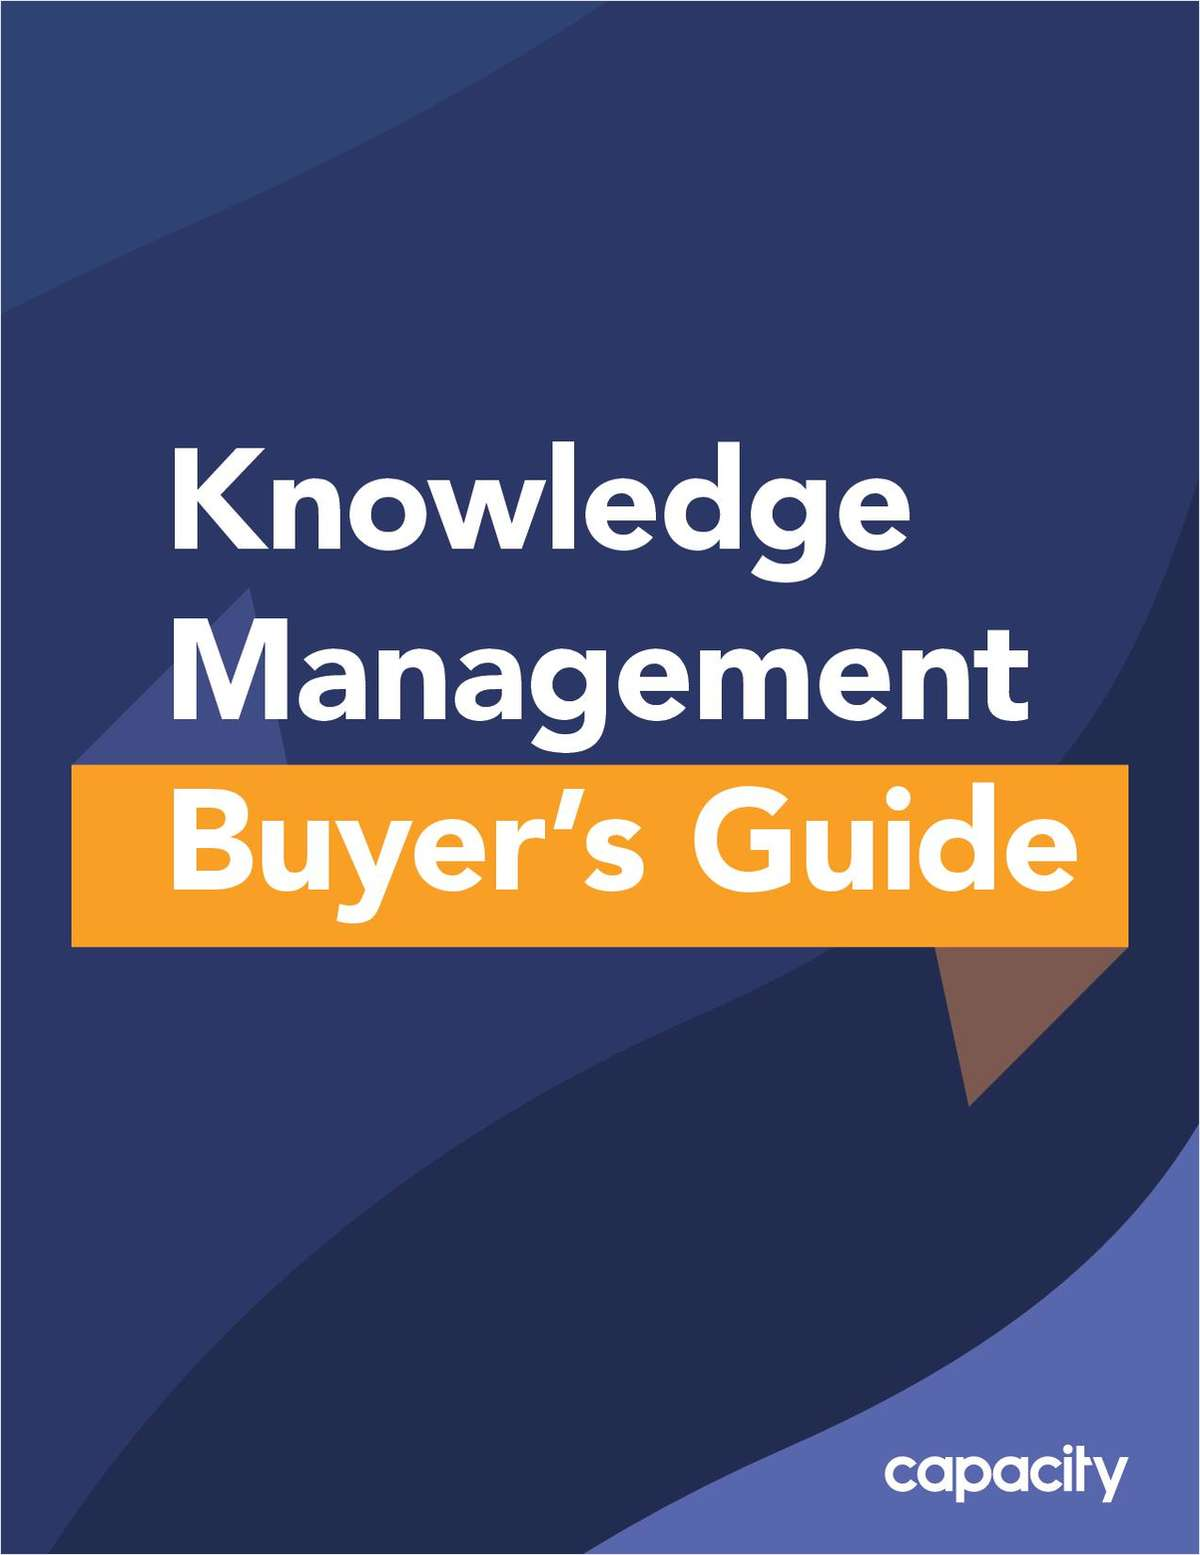 Knowledge Management Buyer's Guide